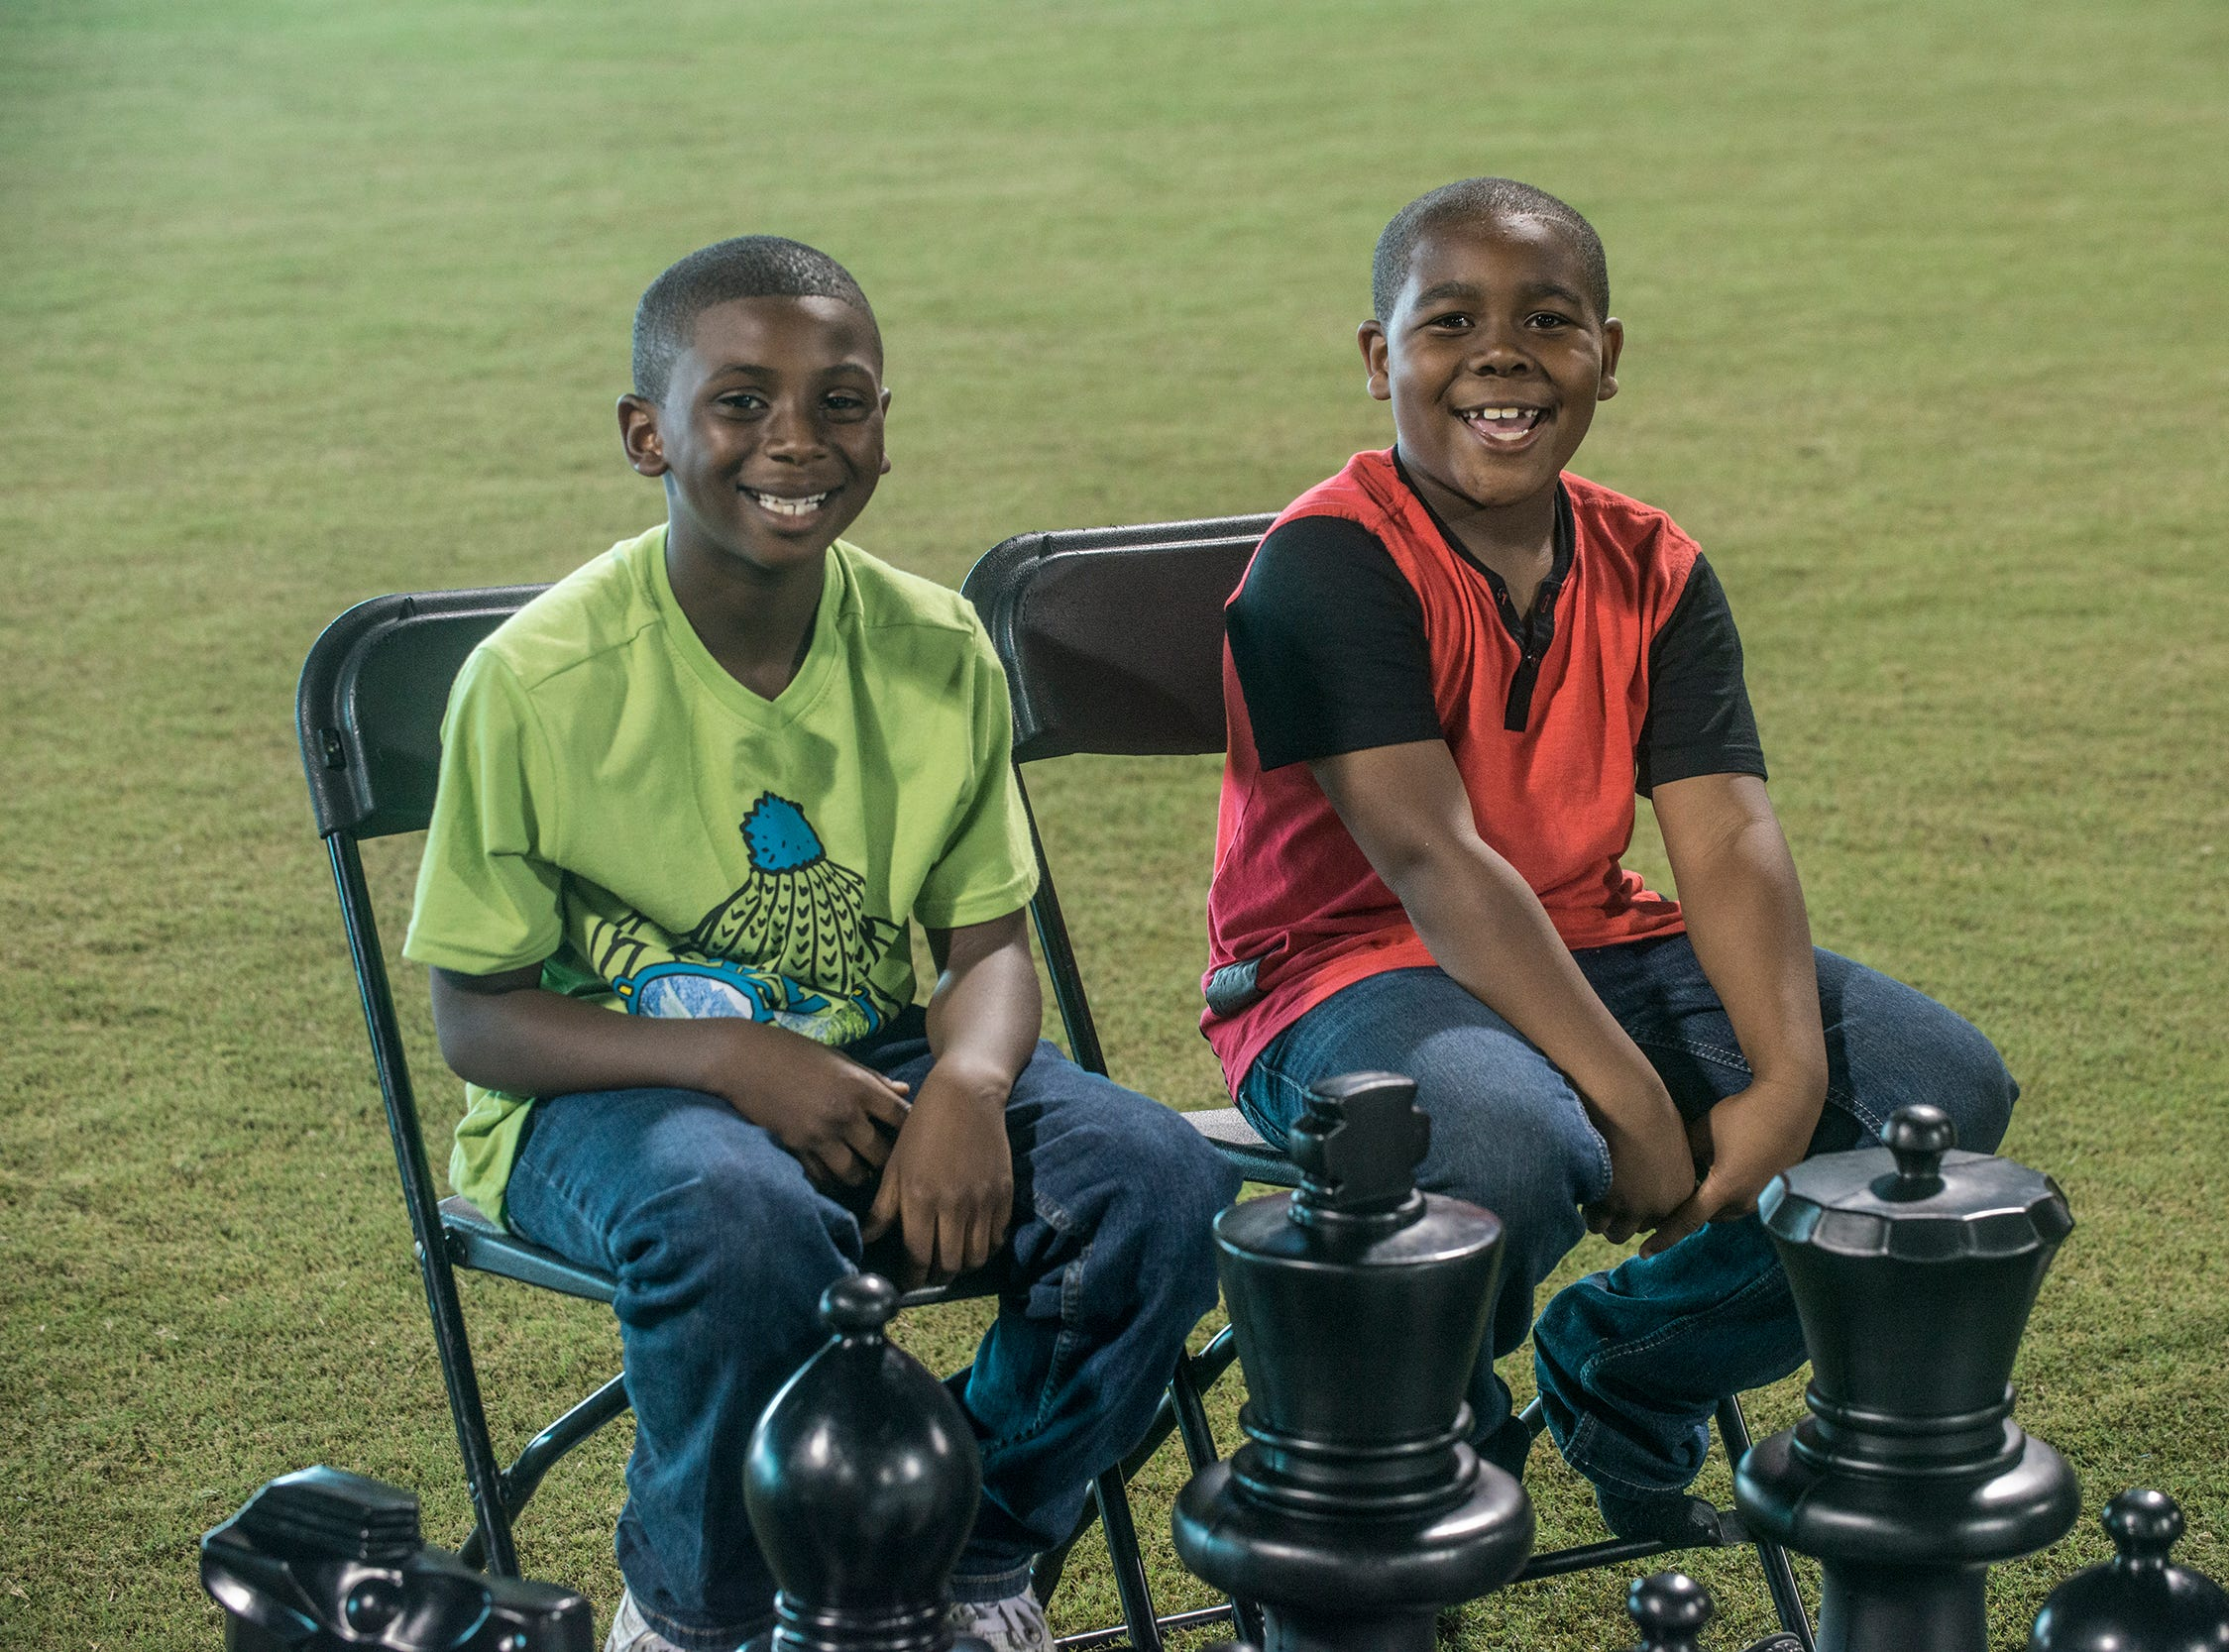 Kids play a game of giant chess Saturday. Food Truck Mash-Up returned to Riverwalk Stadium on Saturday, Oct. 20, 2018, bringing a variety of food trucks, music and games for guests to enjoy.